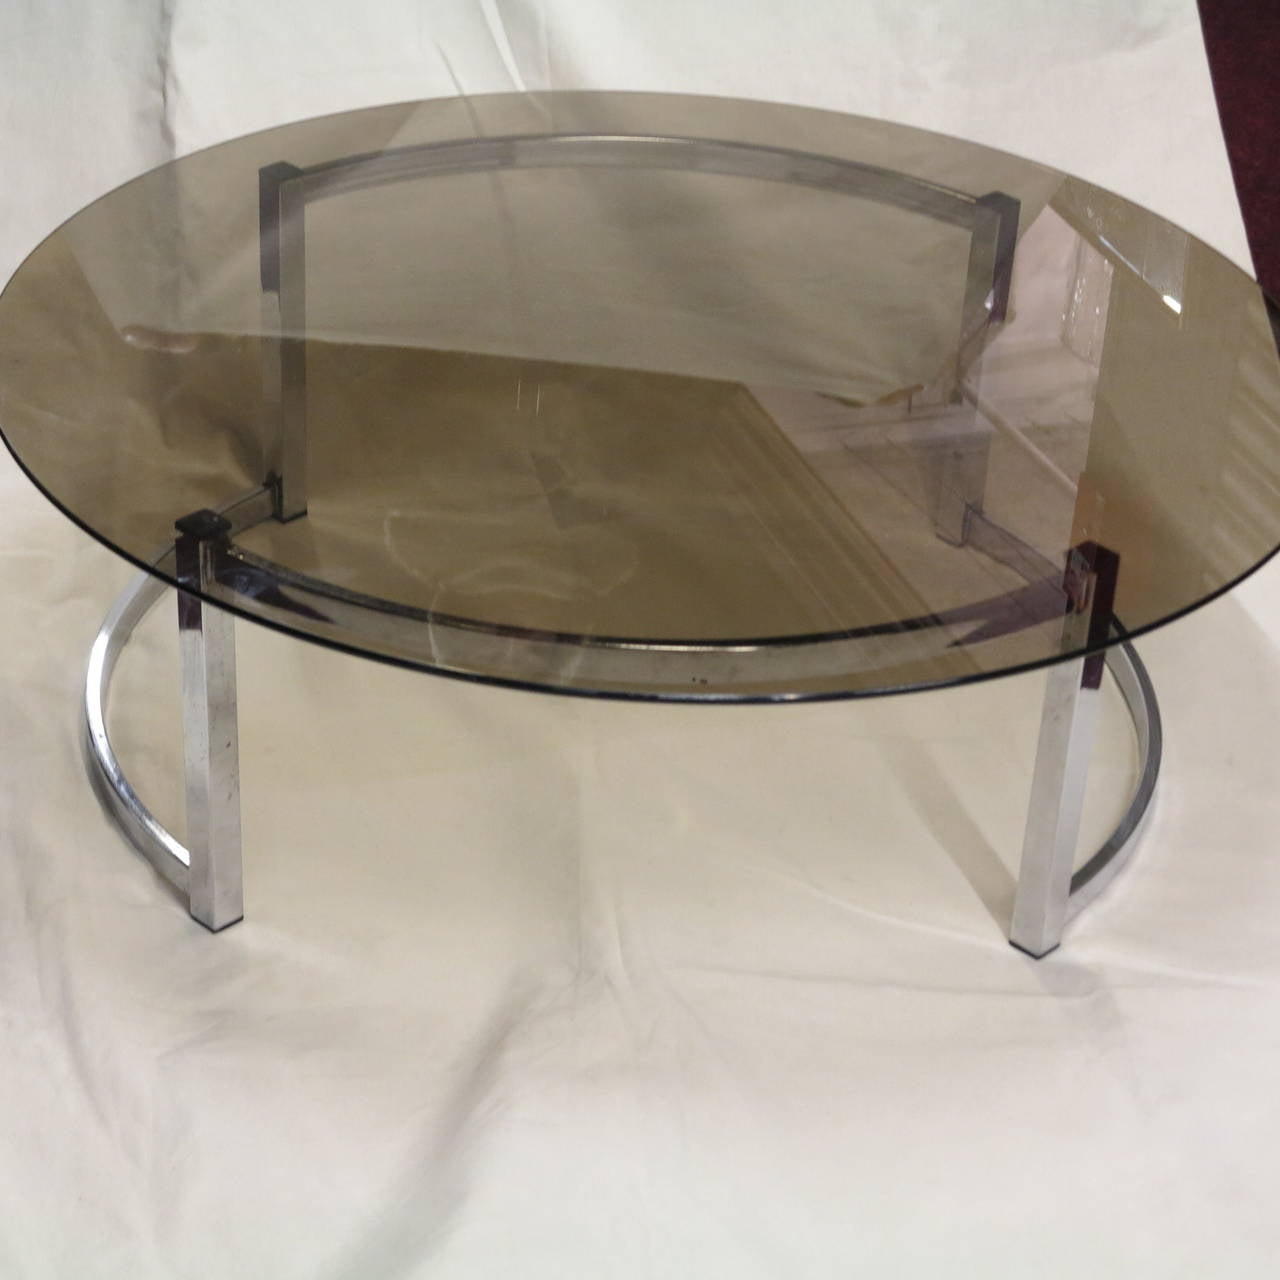 Coffee table with a round smoked glass top for sale at 1stdibs for Round glass coffee table top